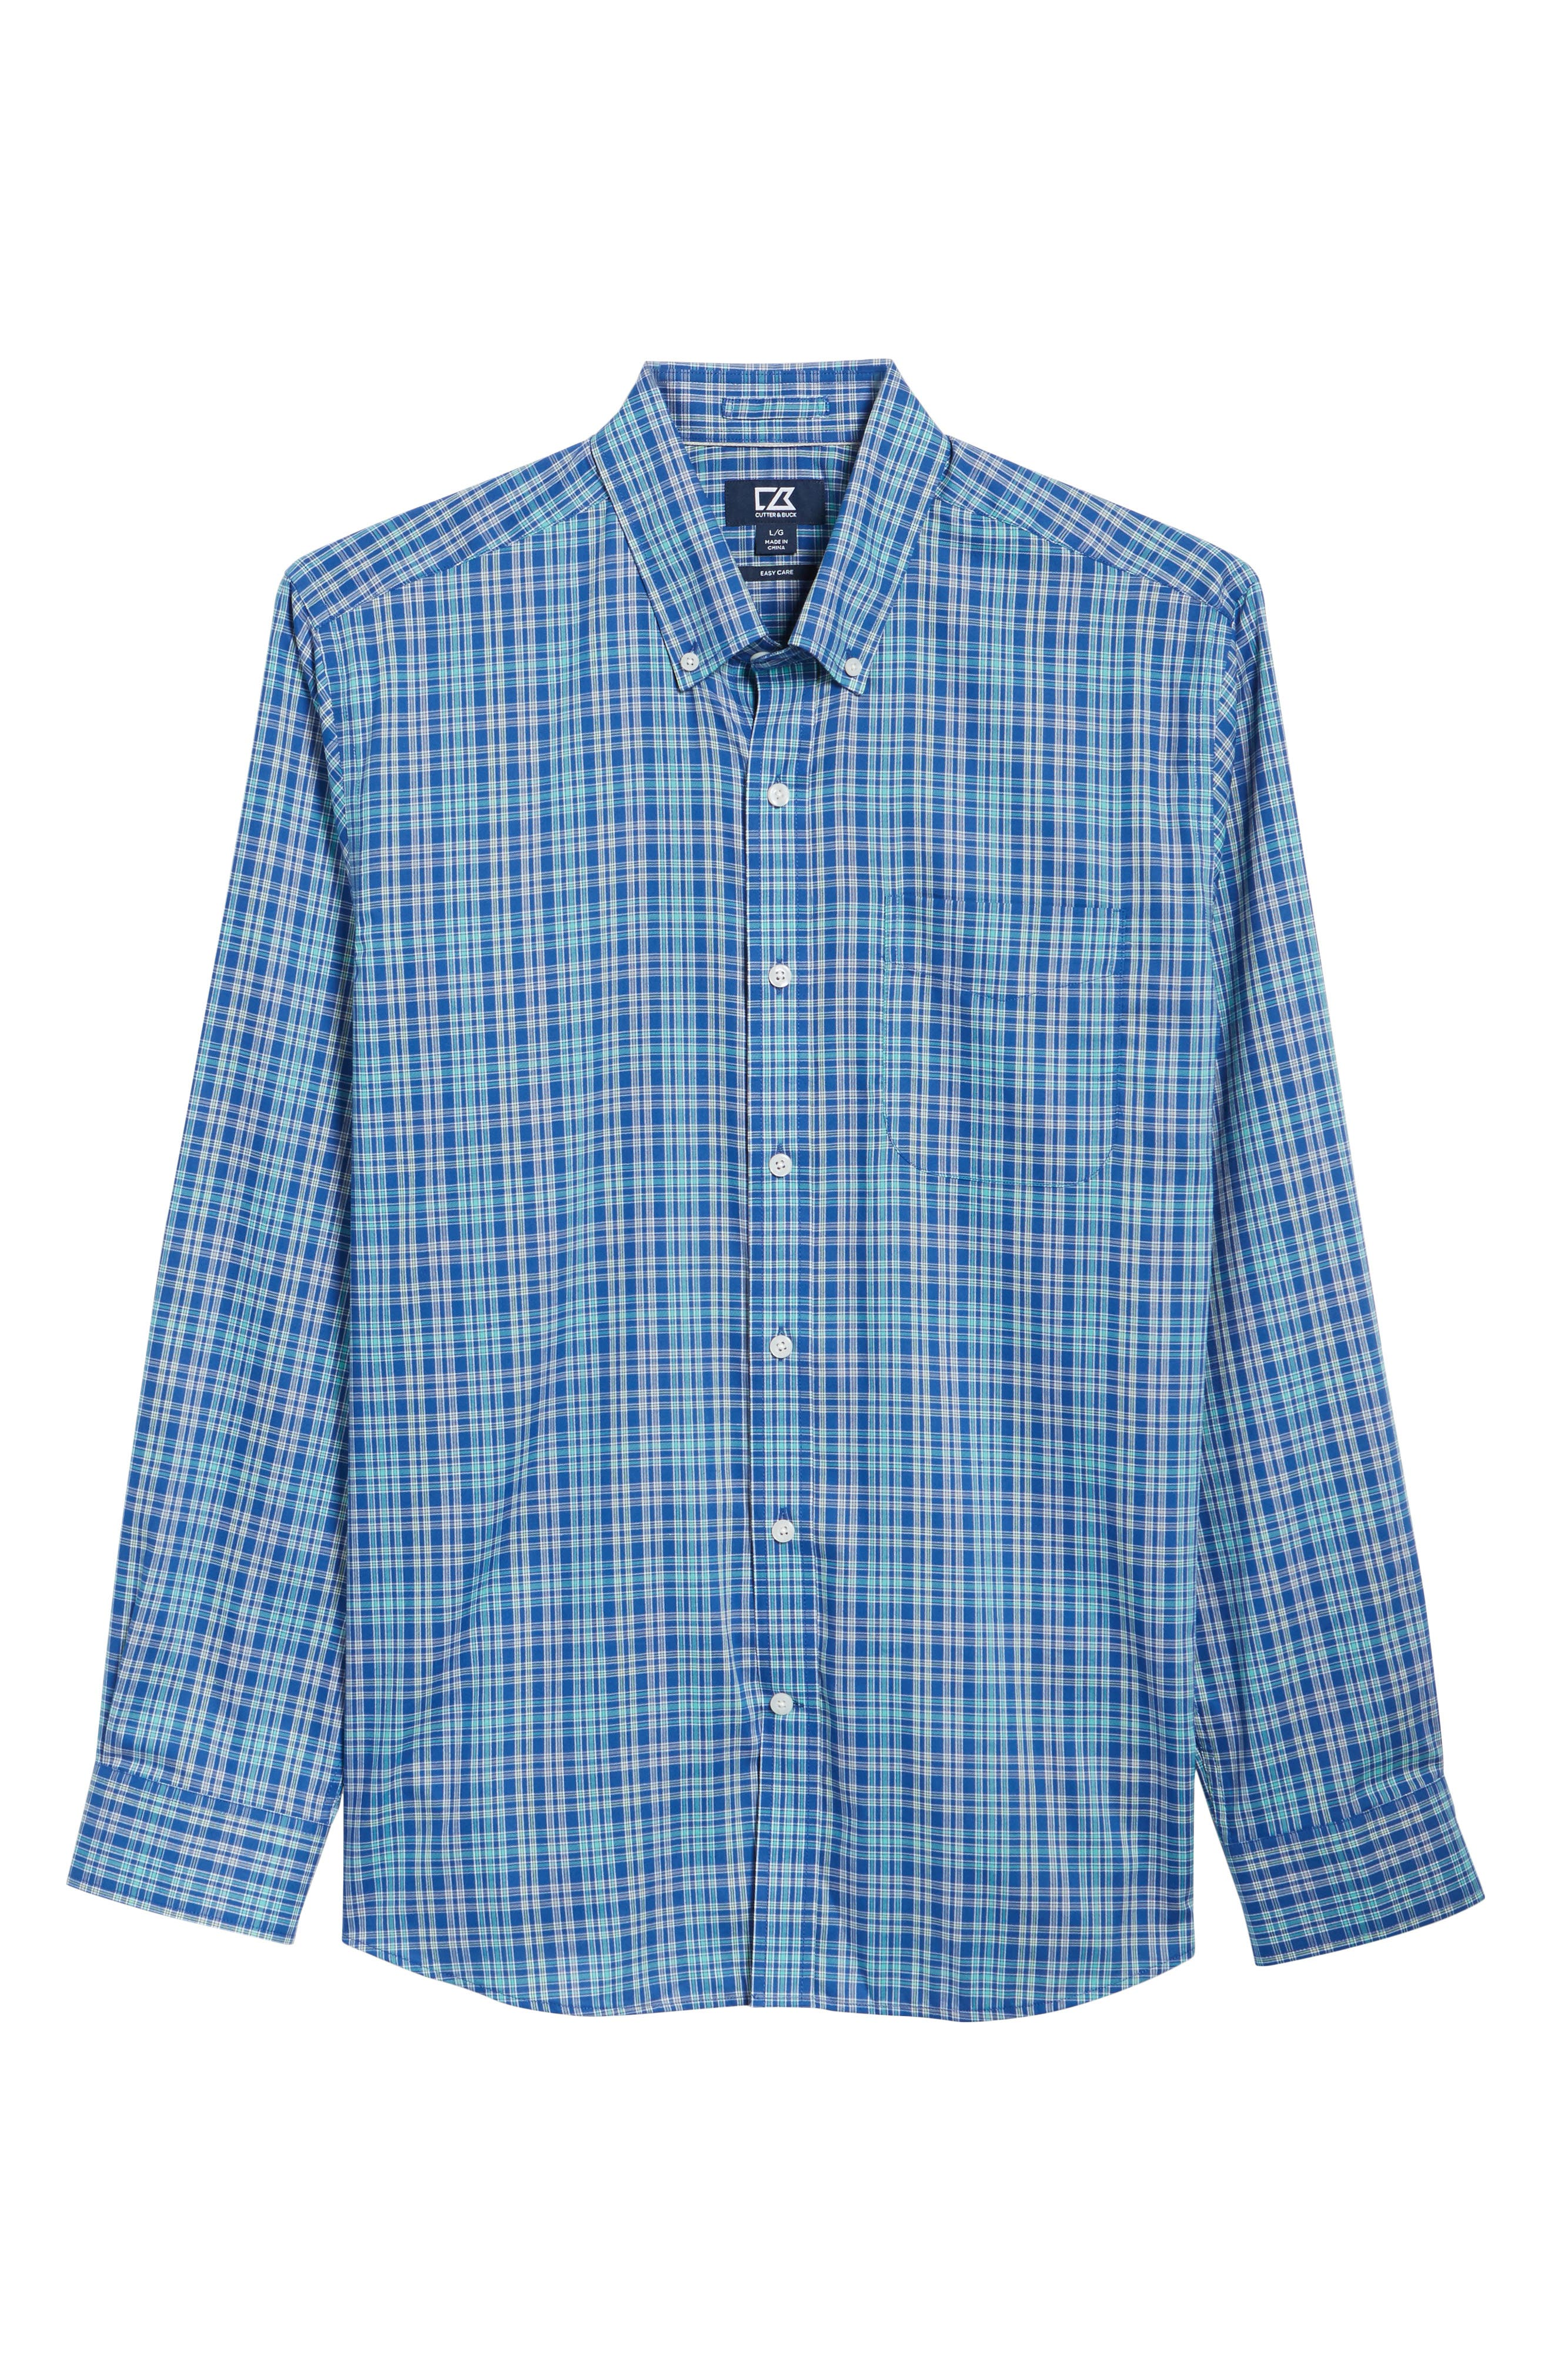 Charlie Classic Fit Easy Care Check Sport Shirt,                             Alternate thumbnail 6, color,                             419